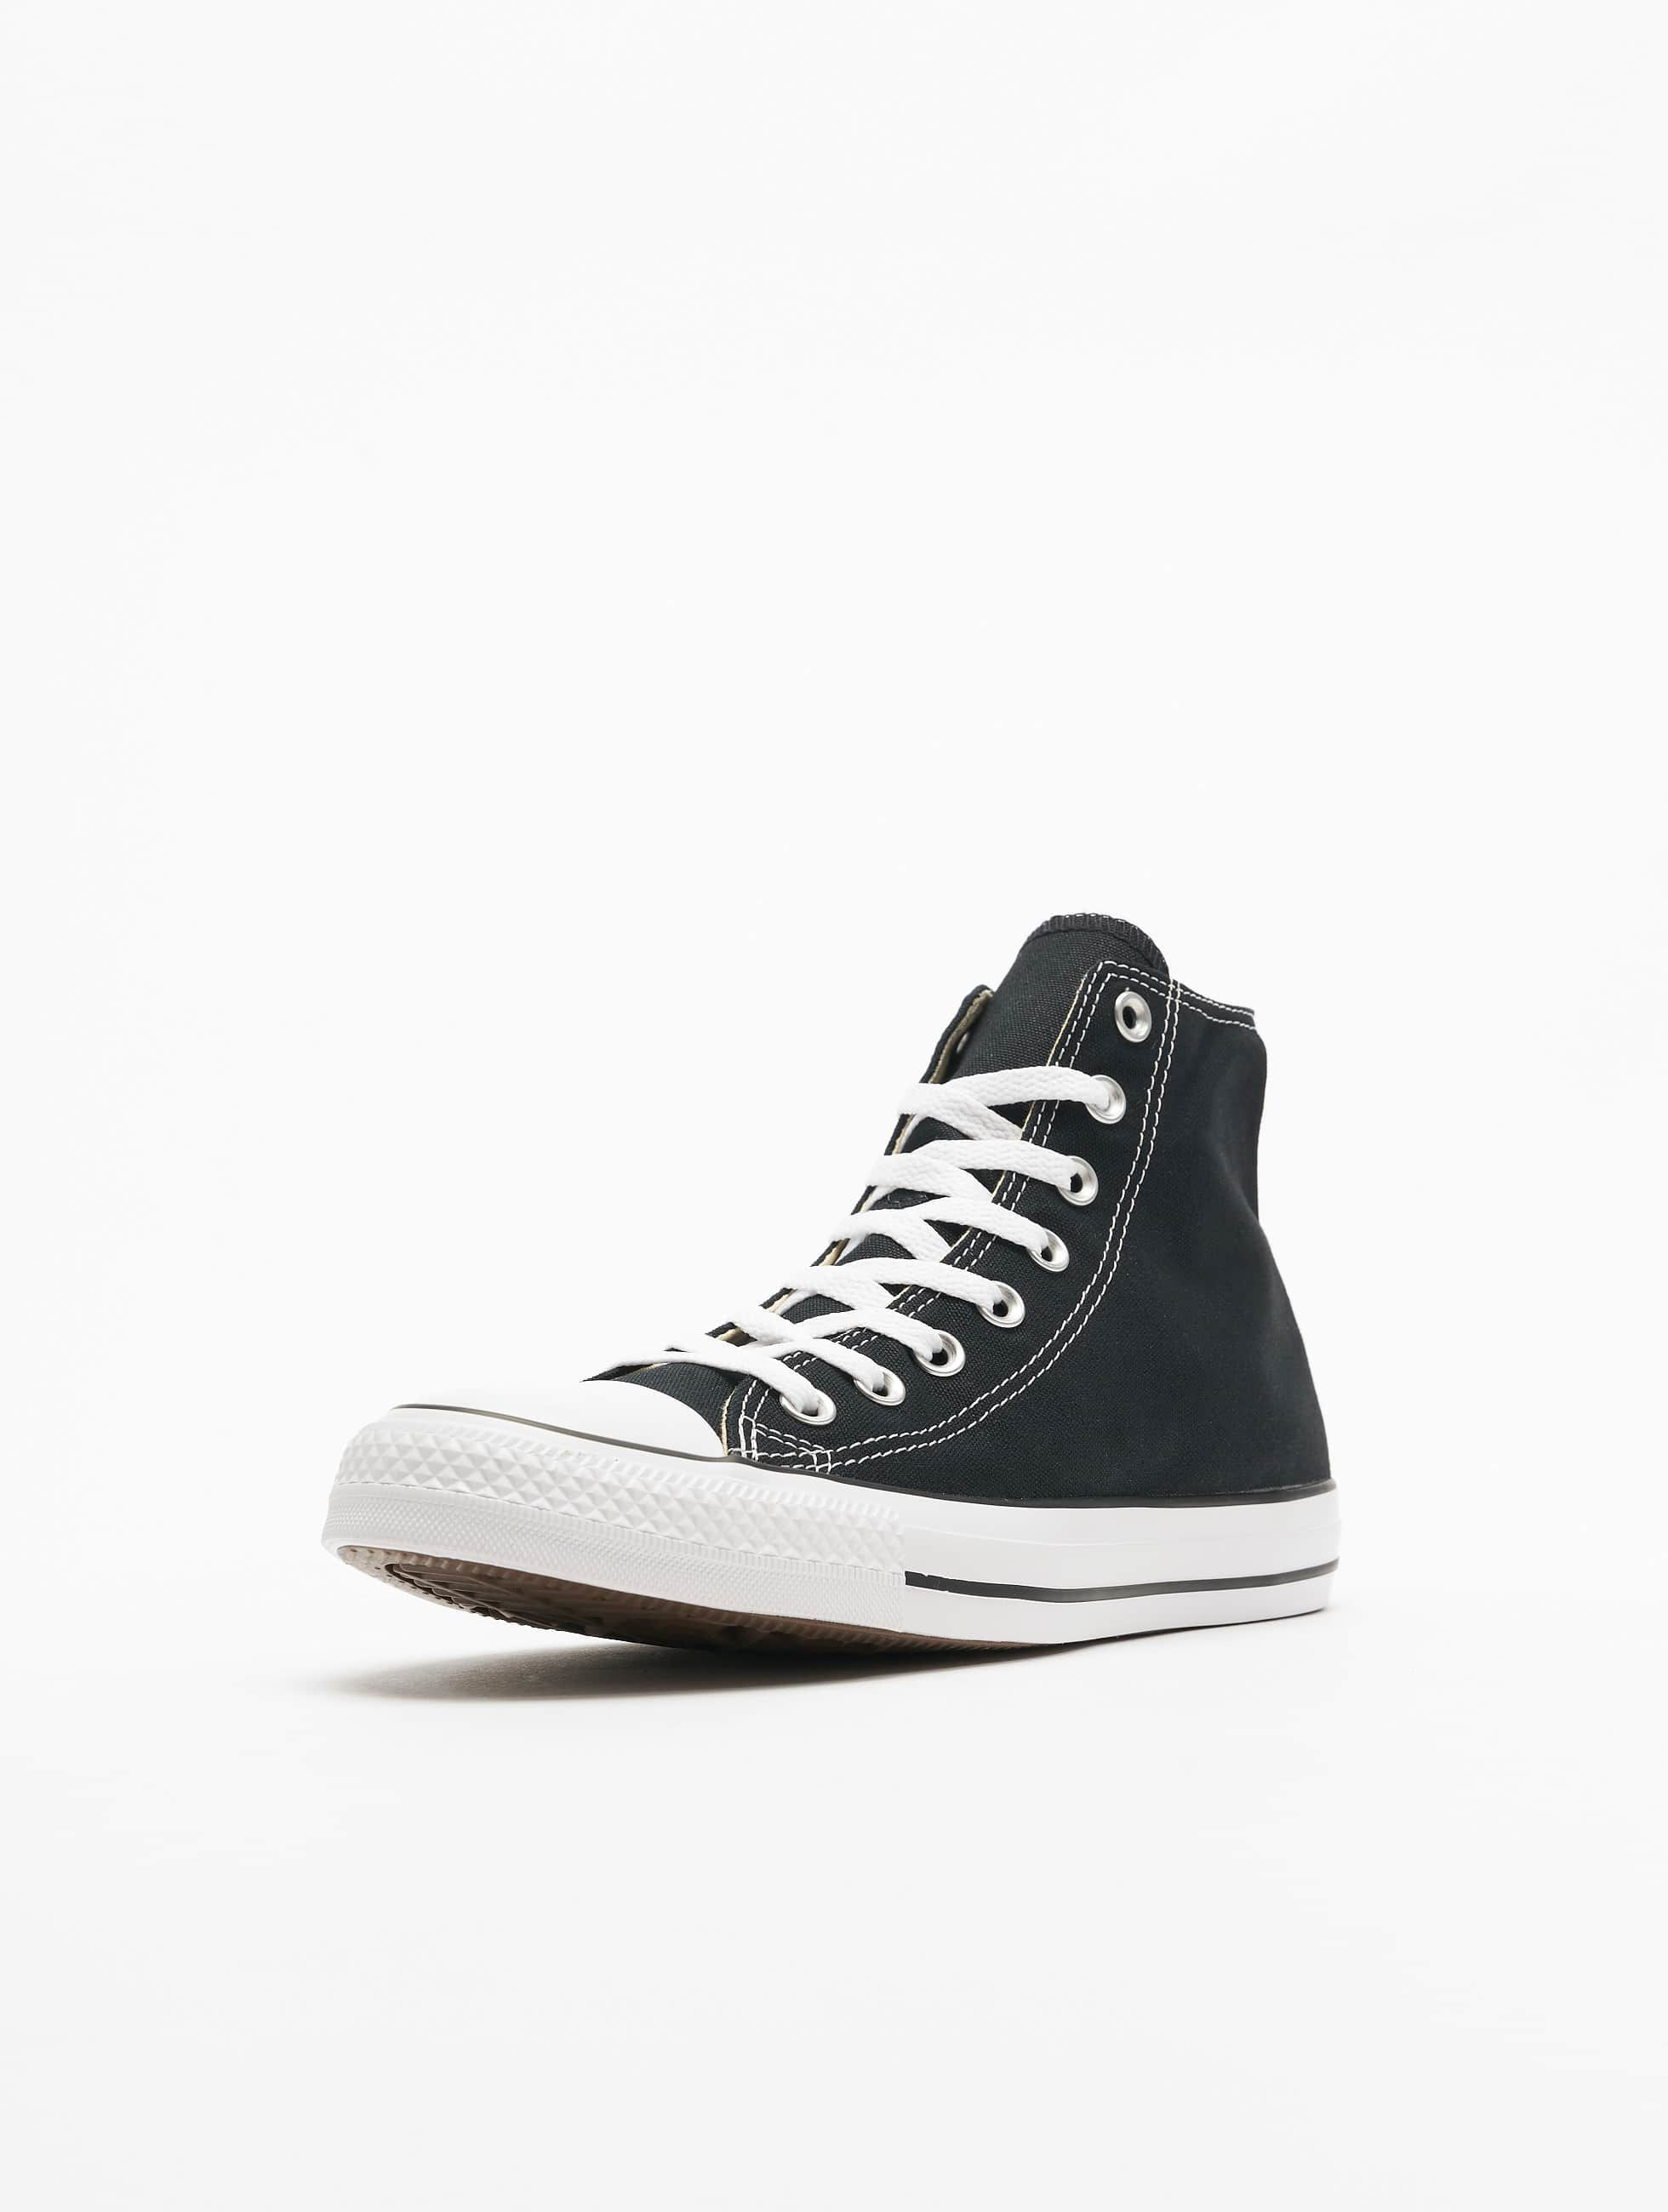 Converse Herren Sneaker All Star High Chucks In Schwarz